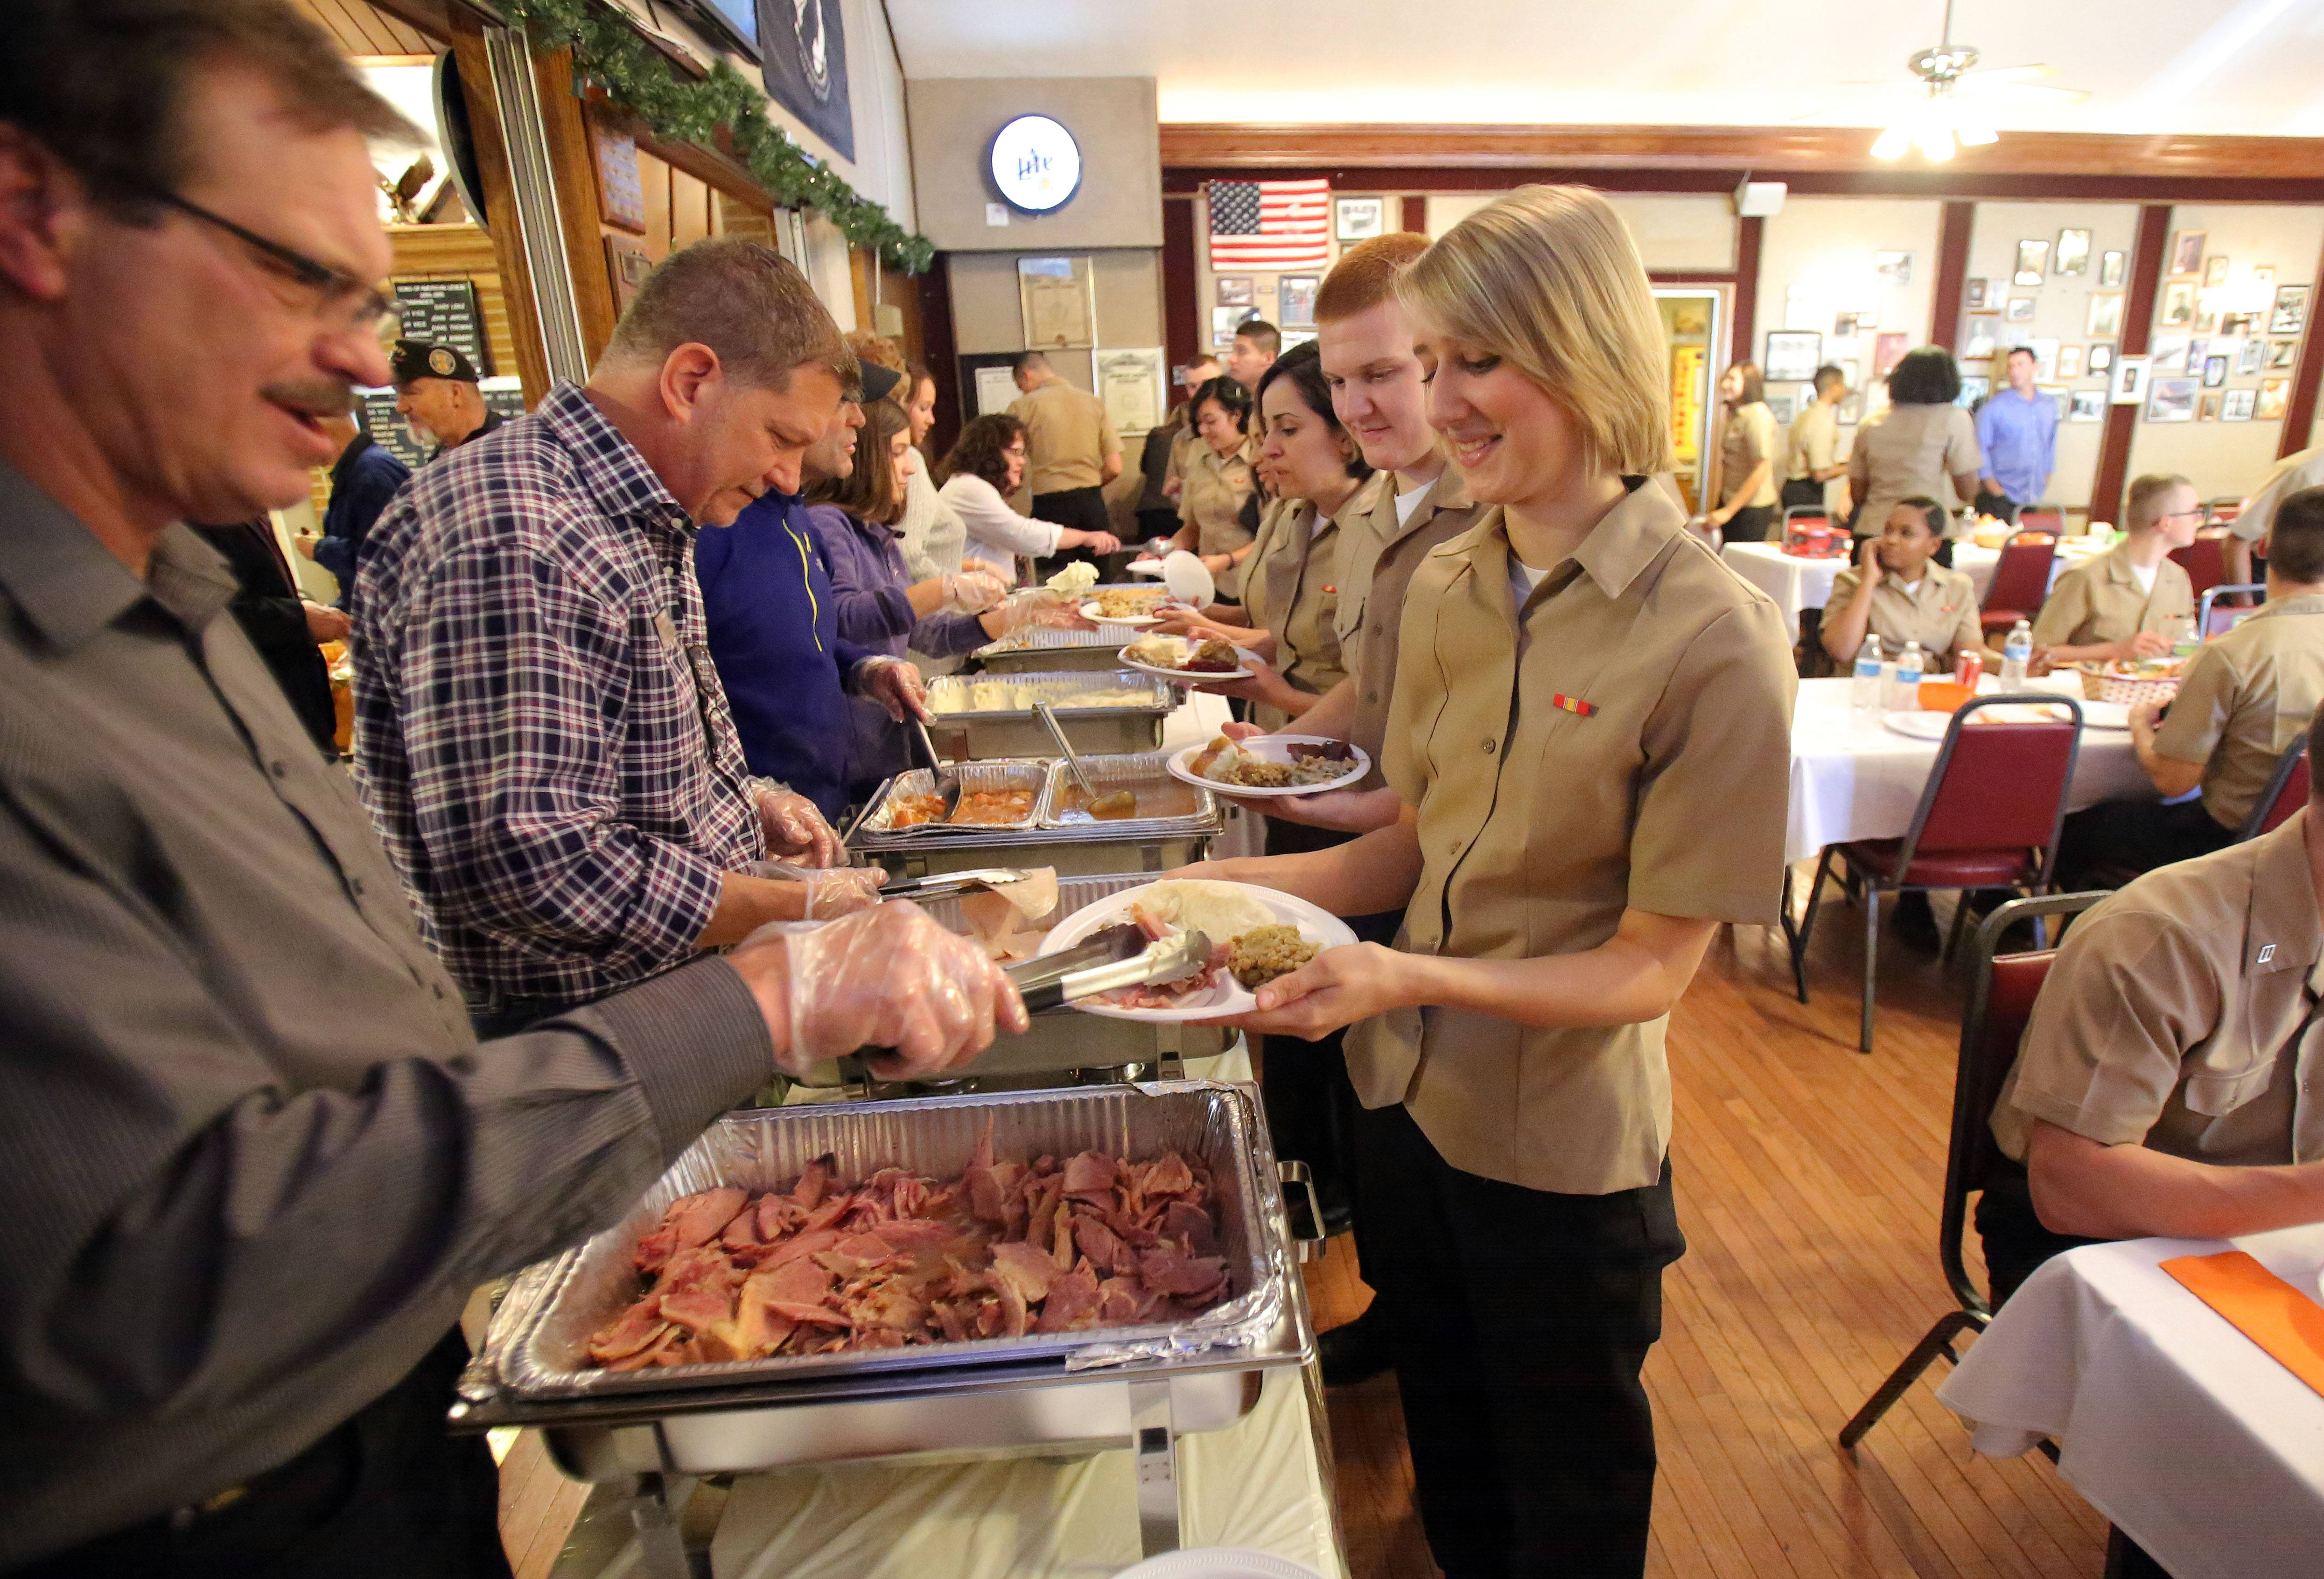 More than 100 recruits from the Great Lakes Naval Station celebrated Thanksgiving at the American Legion hall in Arlington Heights.